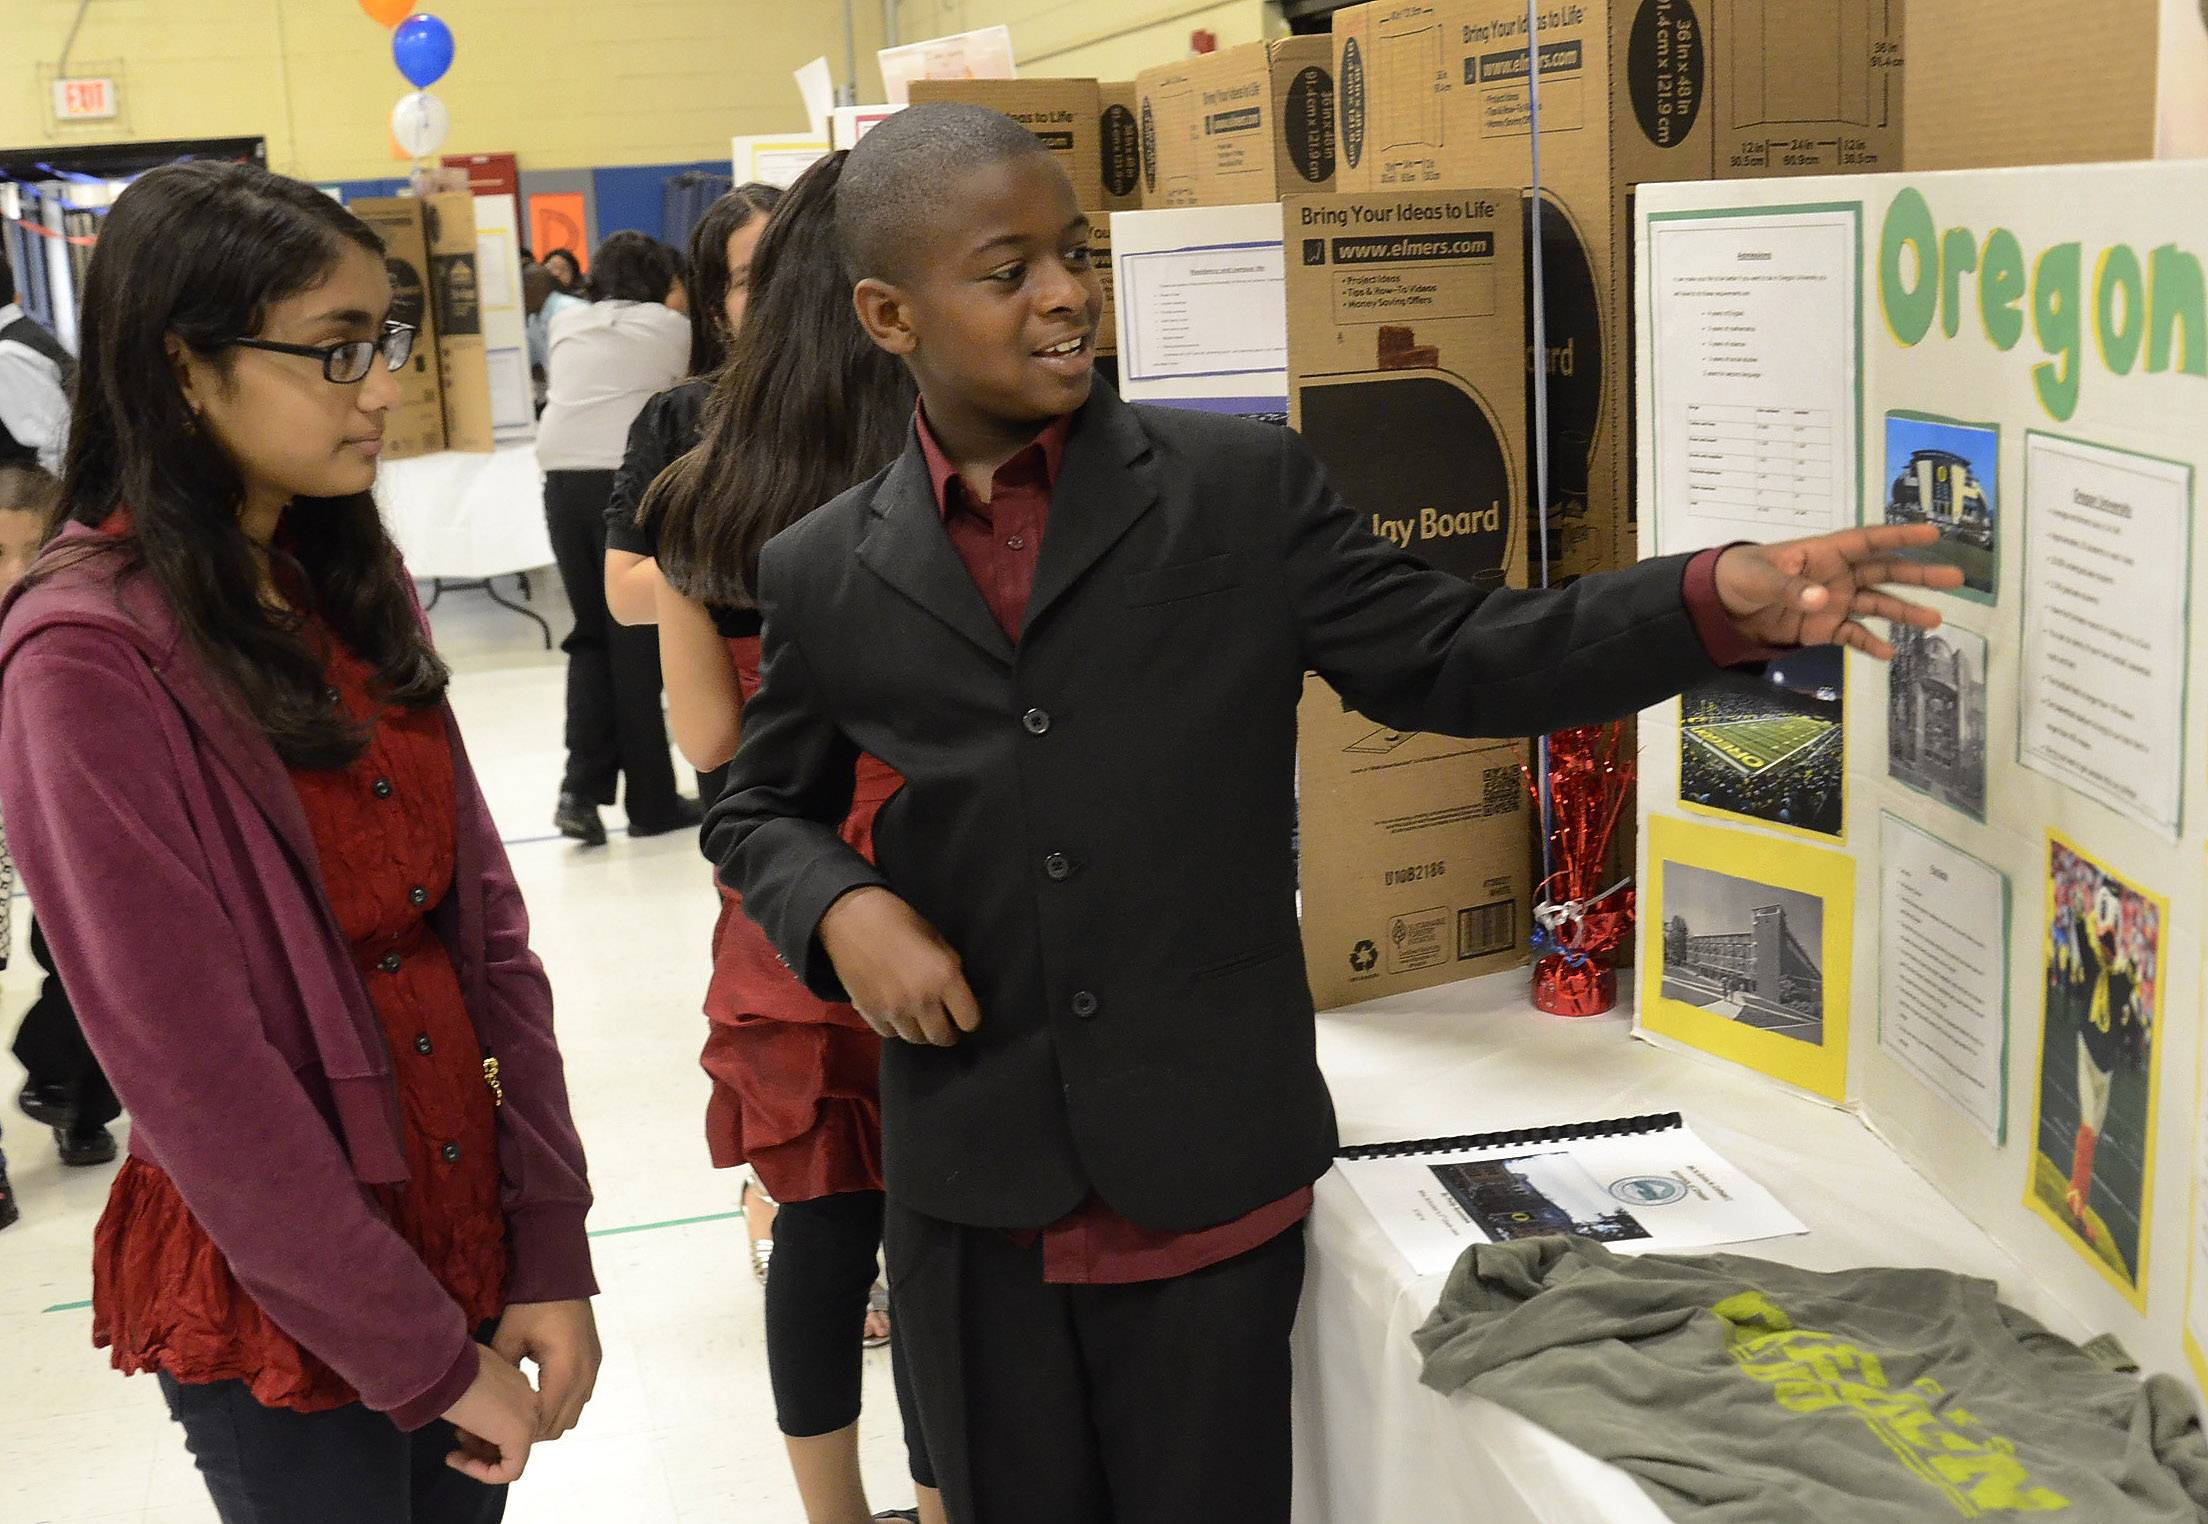 Philip Ayomidele explains the finer points of the University of Oregon to Diya Sonani, left, during the college fair Friday at Ontarioville Elementary.